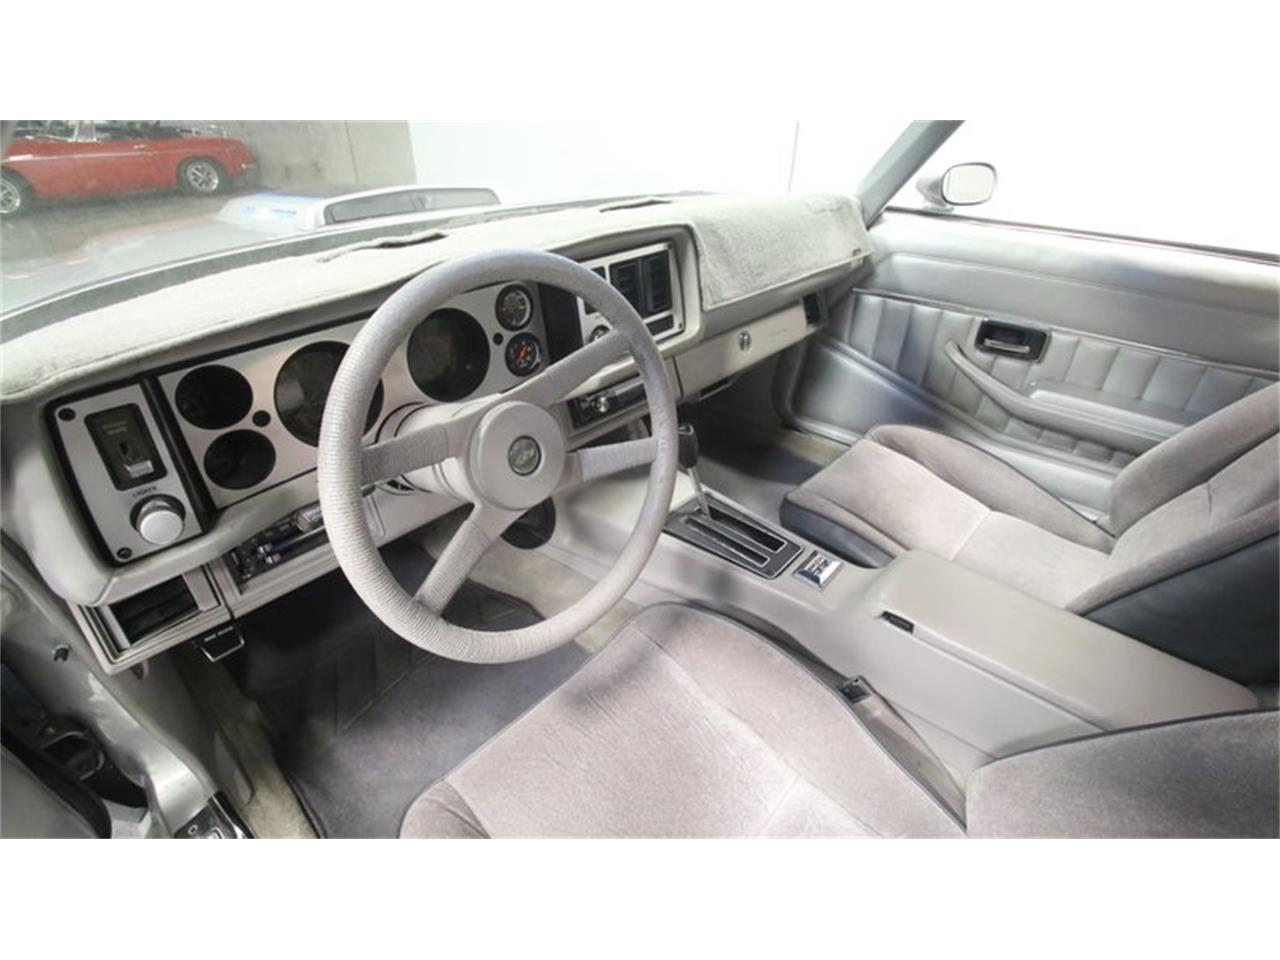 Large Picture of 1980 Camaro located in Georgia - $23,995.00 Offered by Streetside Classics - Atlanta - O8Z8